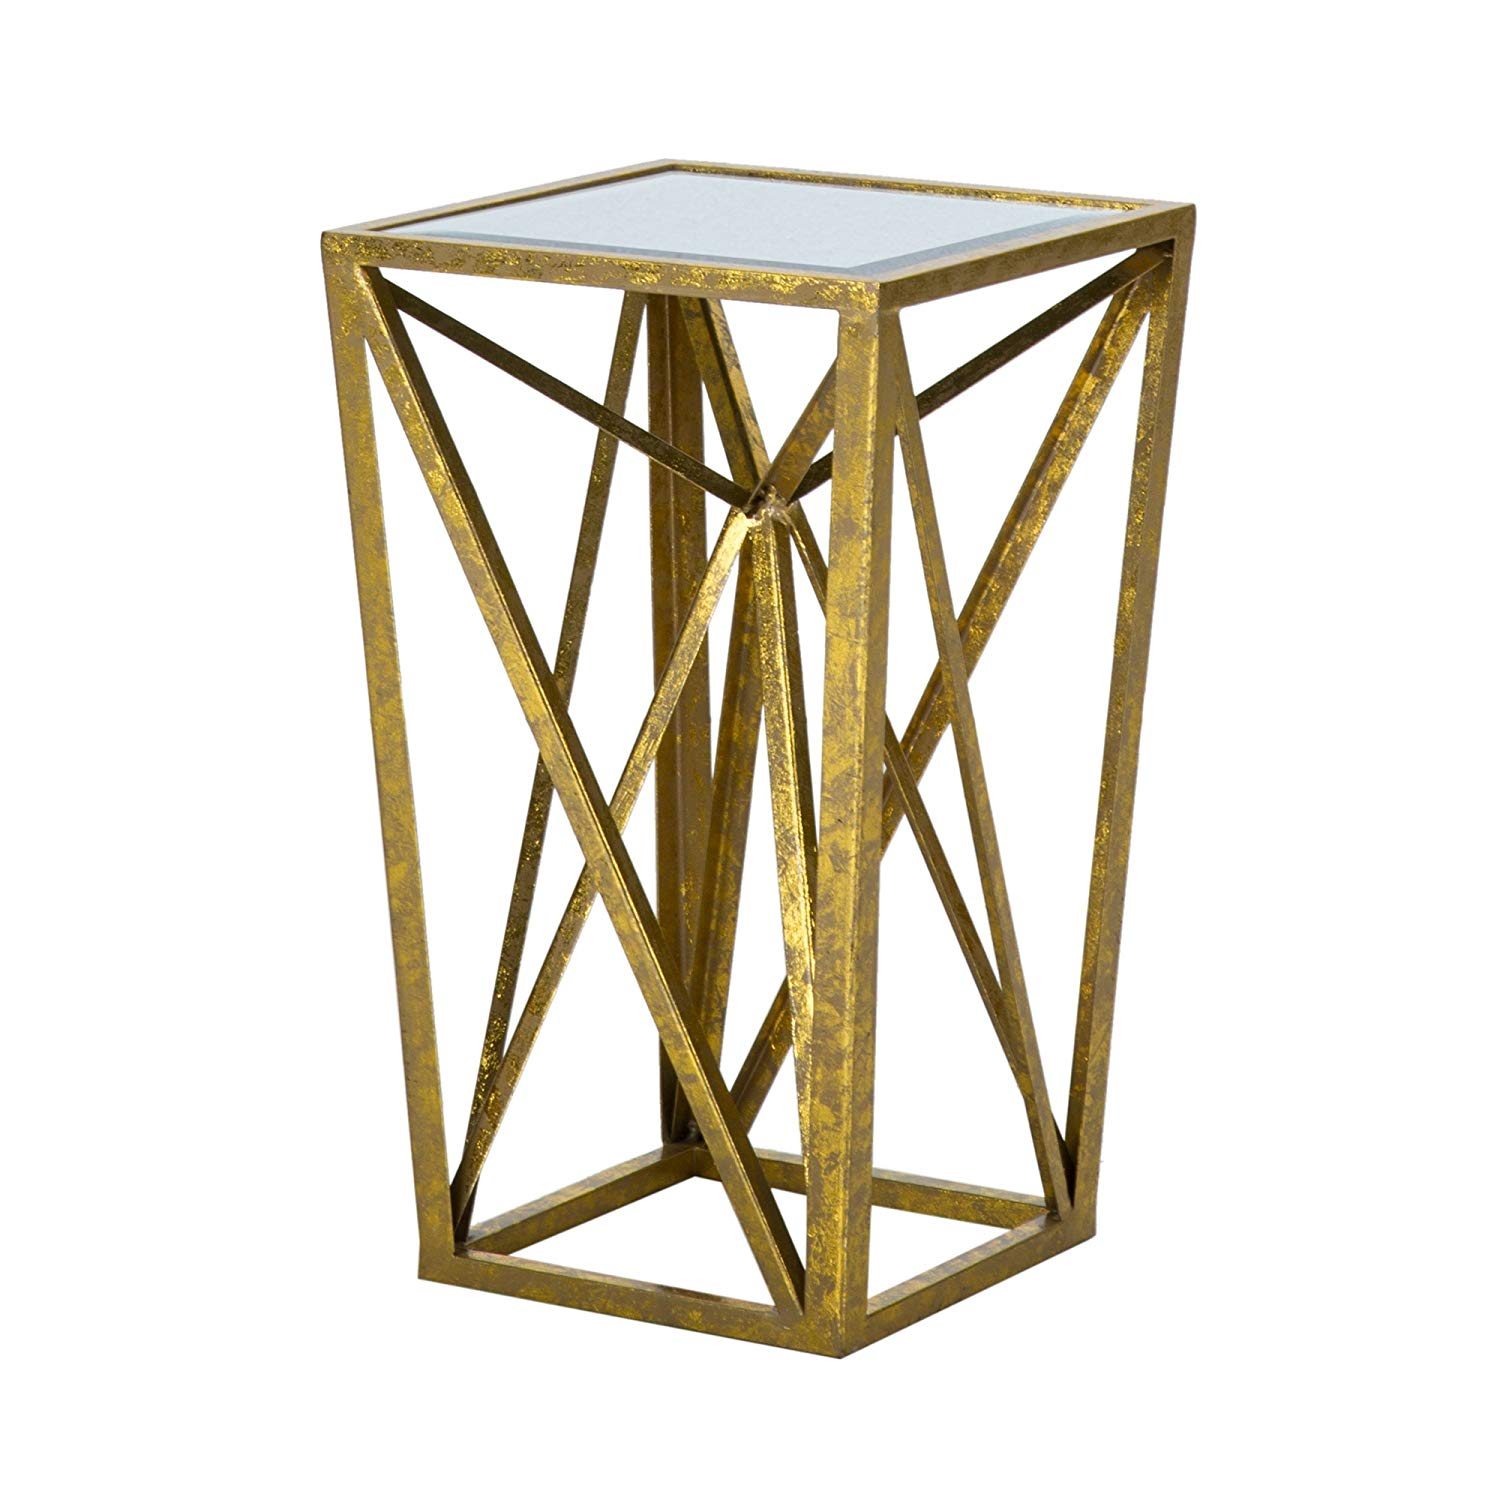 madison park zee accent tables mirror glass metal wood table side gold angular design modern style end piece top hollow round foyer retro kitchen console with shoe storage silver